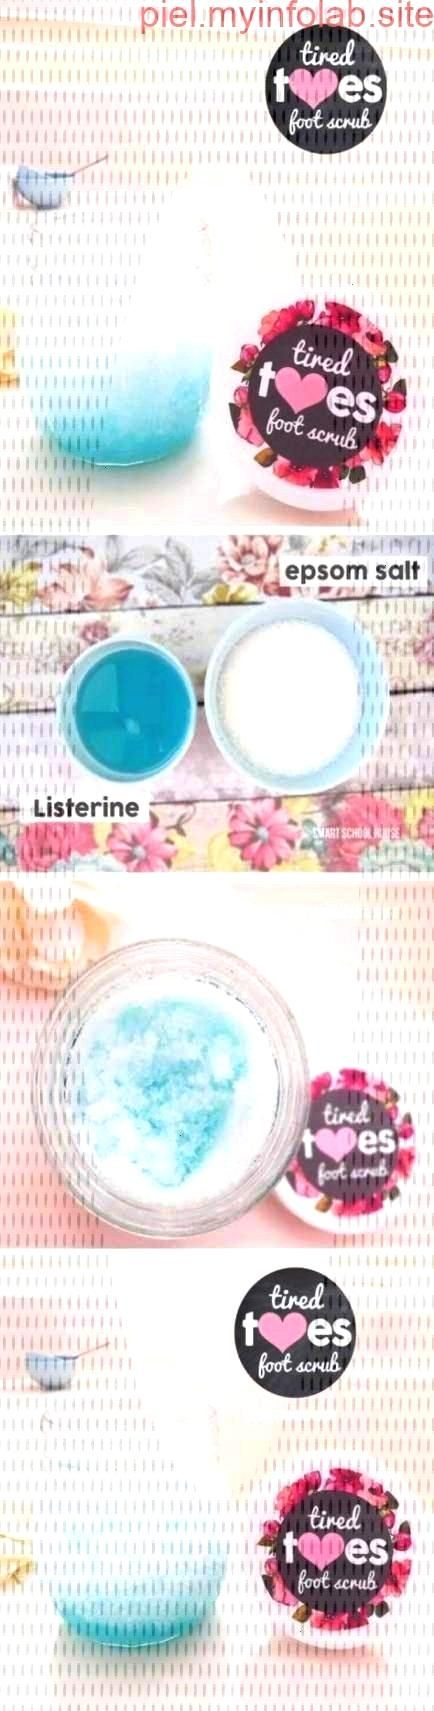 New Ideas For Diy Gifts For Husband Just Because Sugar Scrubs -30+ New Ideas For Diy Gifts For Husb